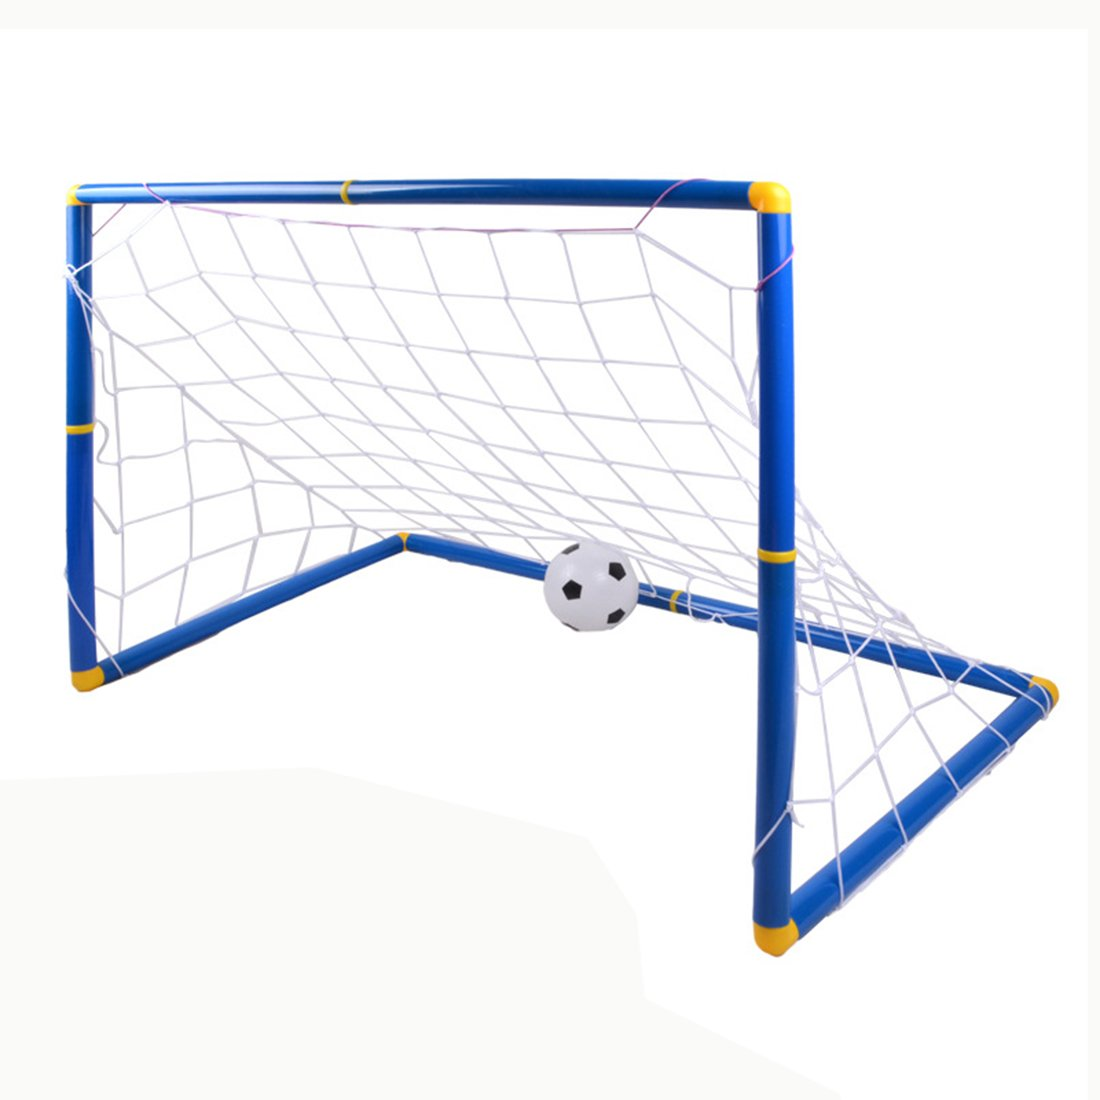 Soccer Goals, FINER Large Size Kids Children Sports Soccer Goals with Soccer Ball and Pump Practice Scrimmage Game - Blue + White